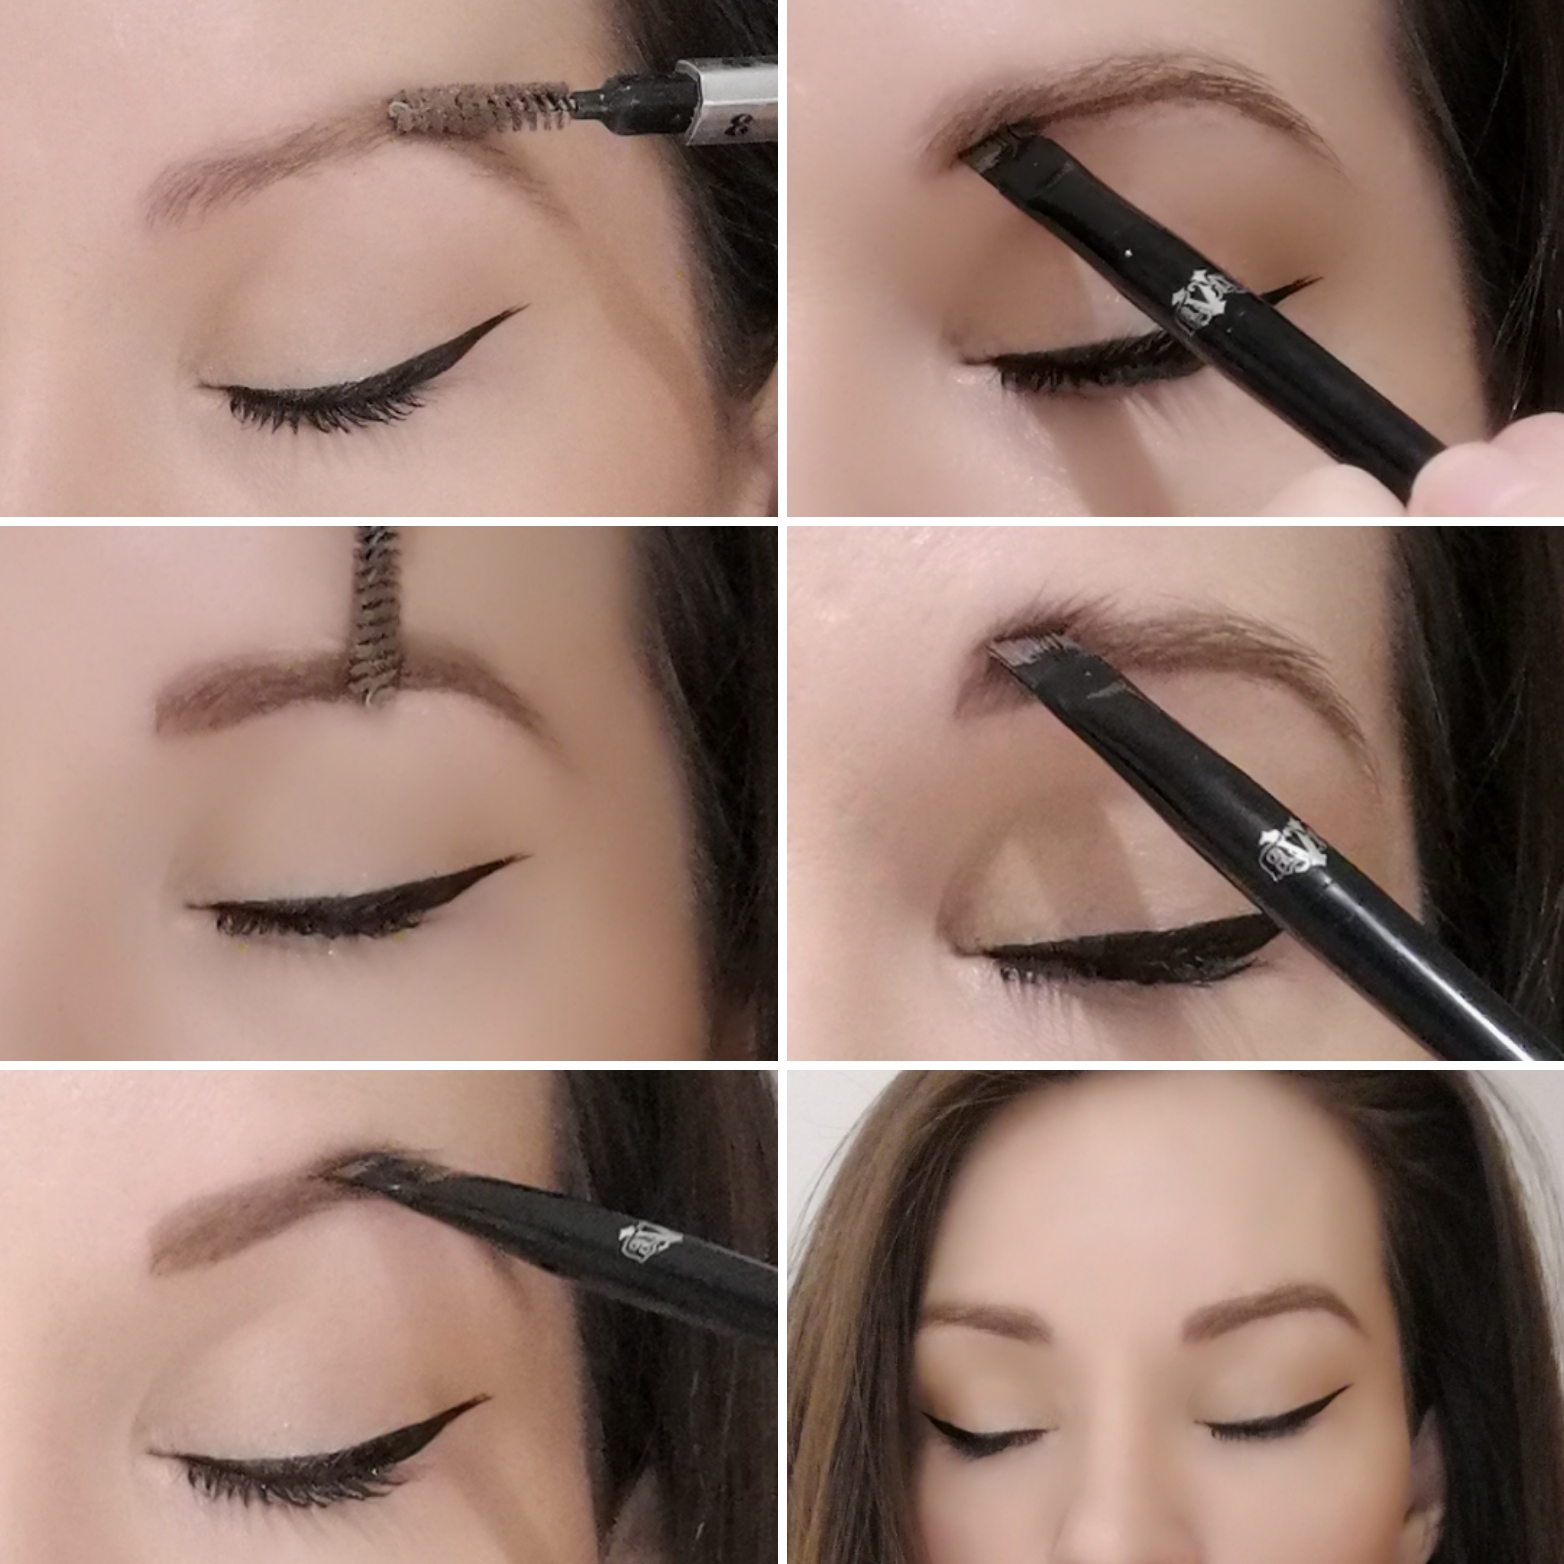 Kat Von D 24-Hour Super Brow Long-Wear Pomade How To Tutorial